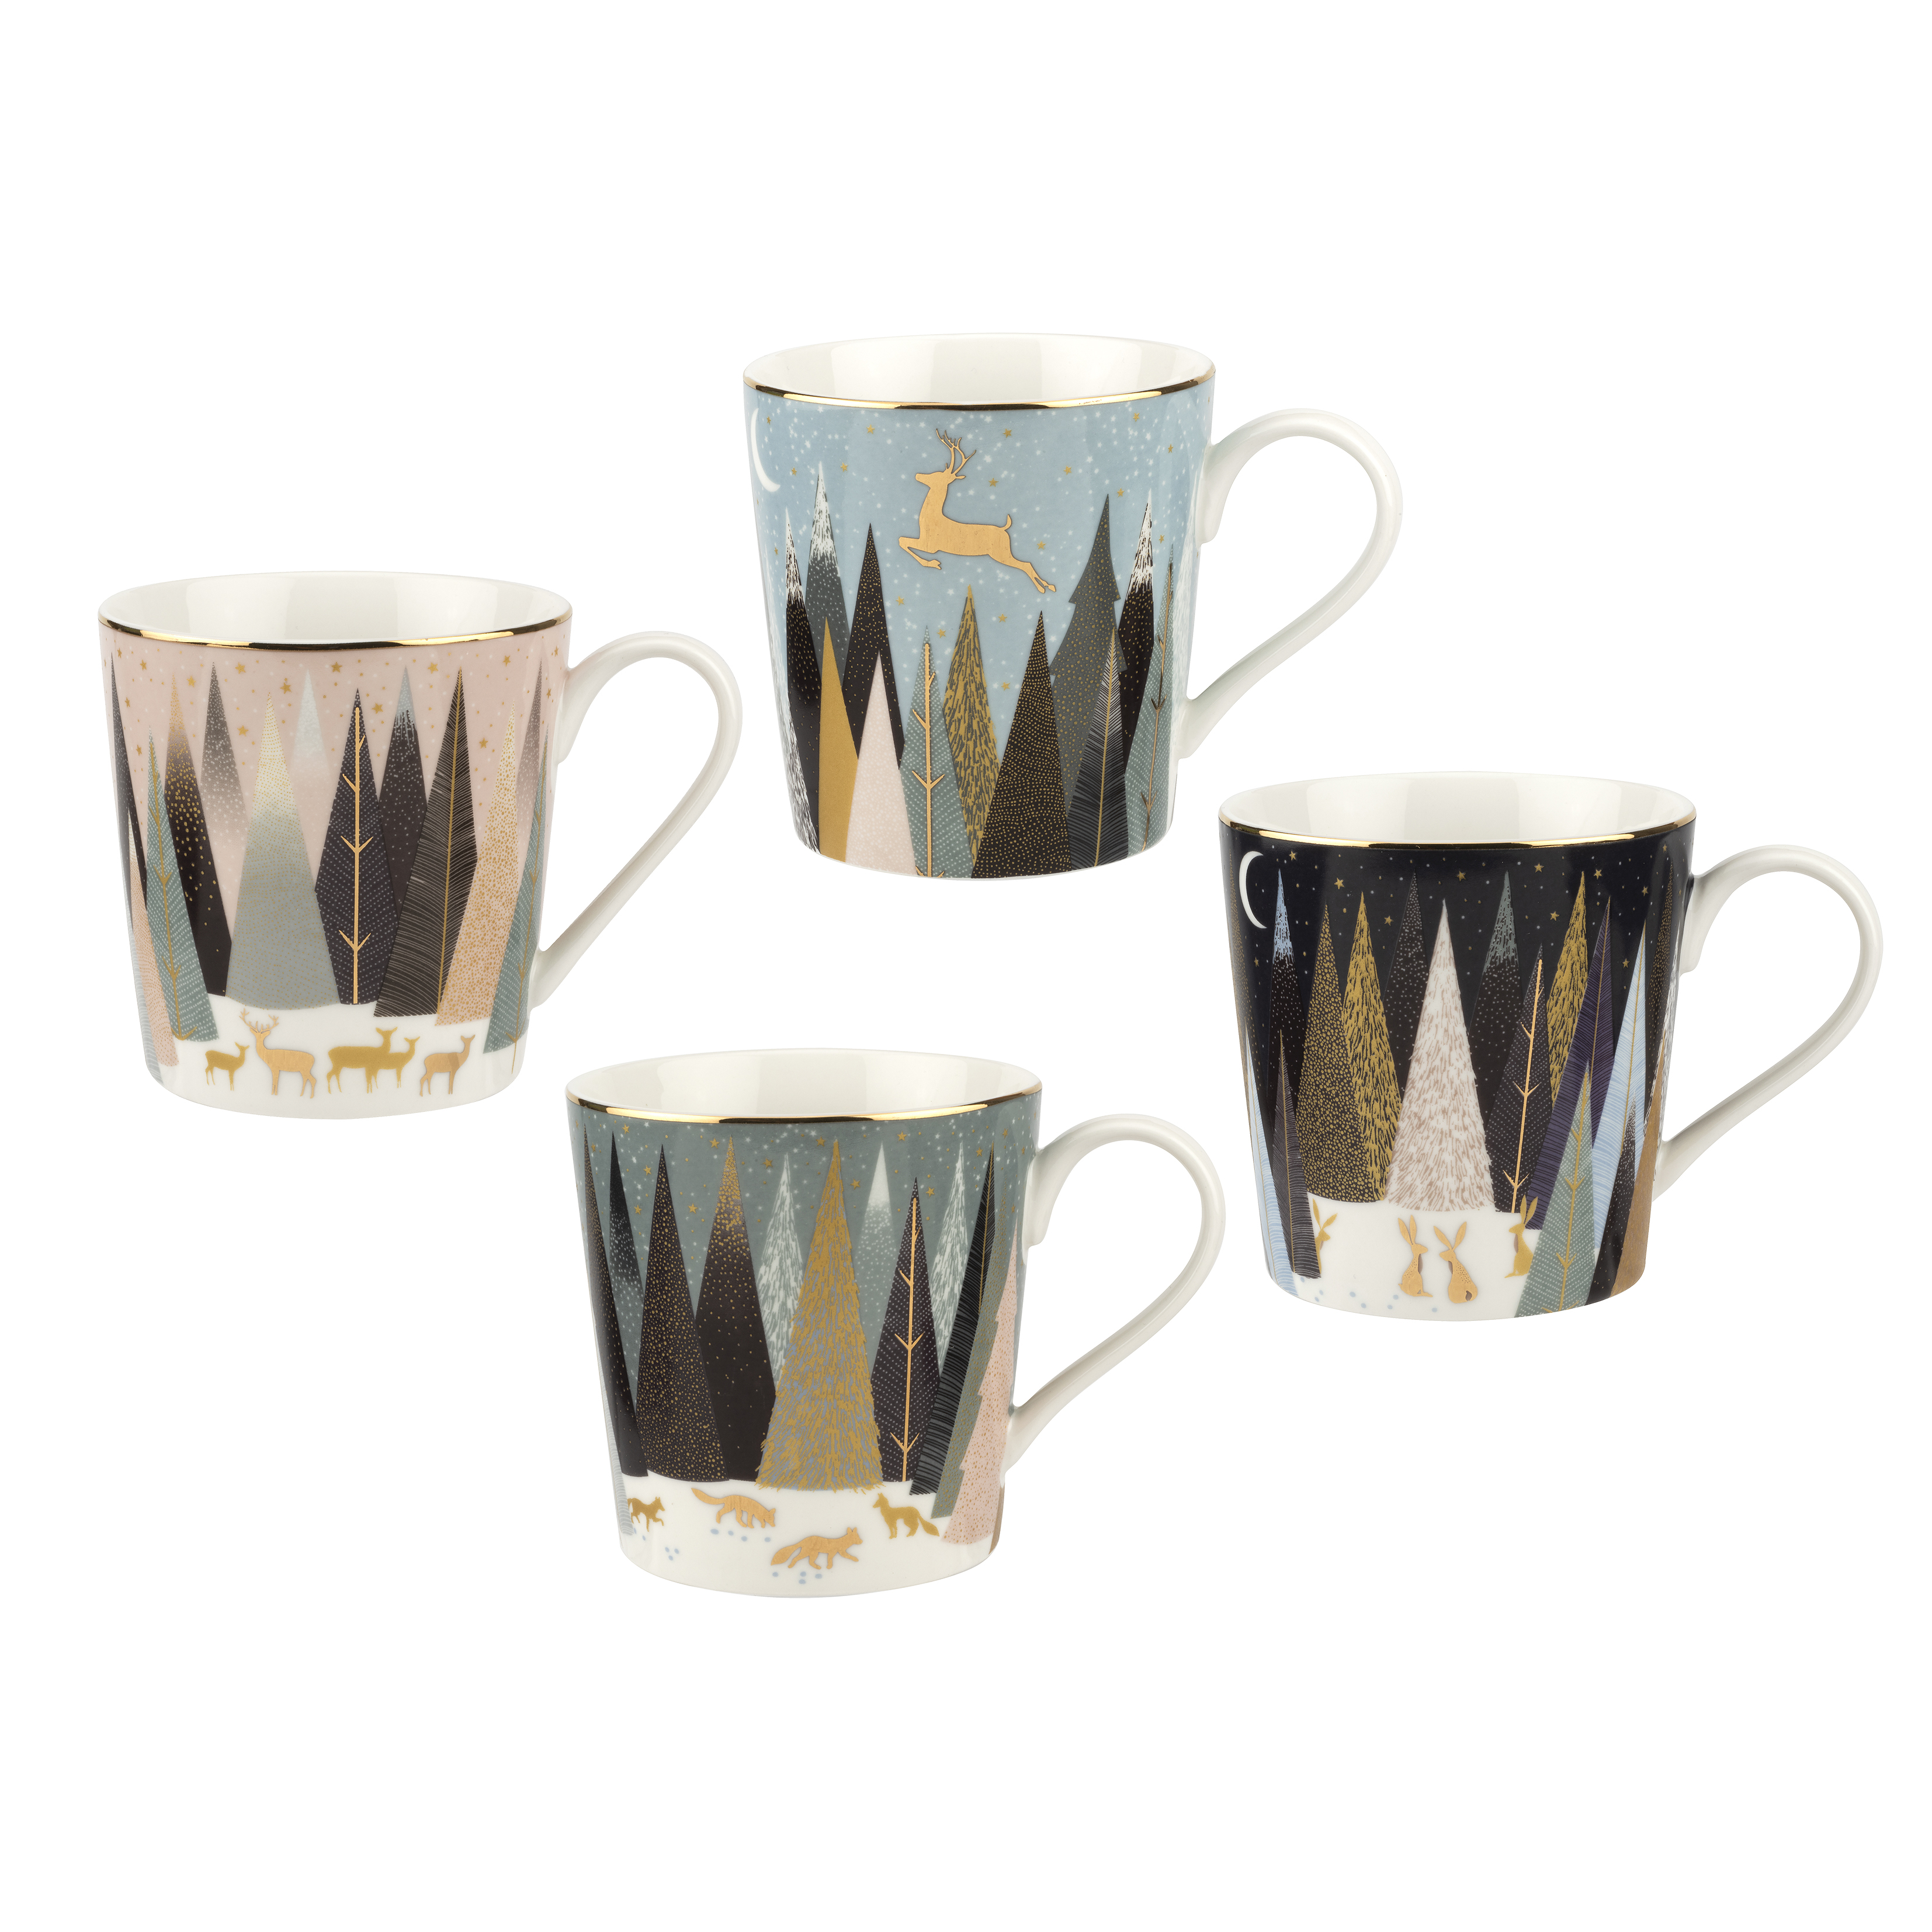 Sara Miller London for Portmeirion Frosted Pines Set of 4 Mugs 12 oz image number 0